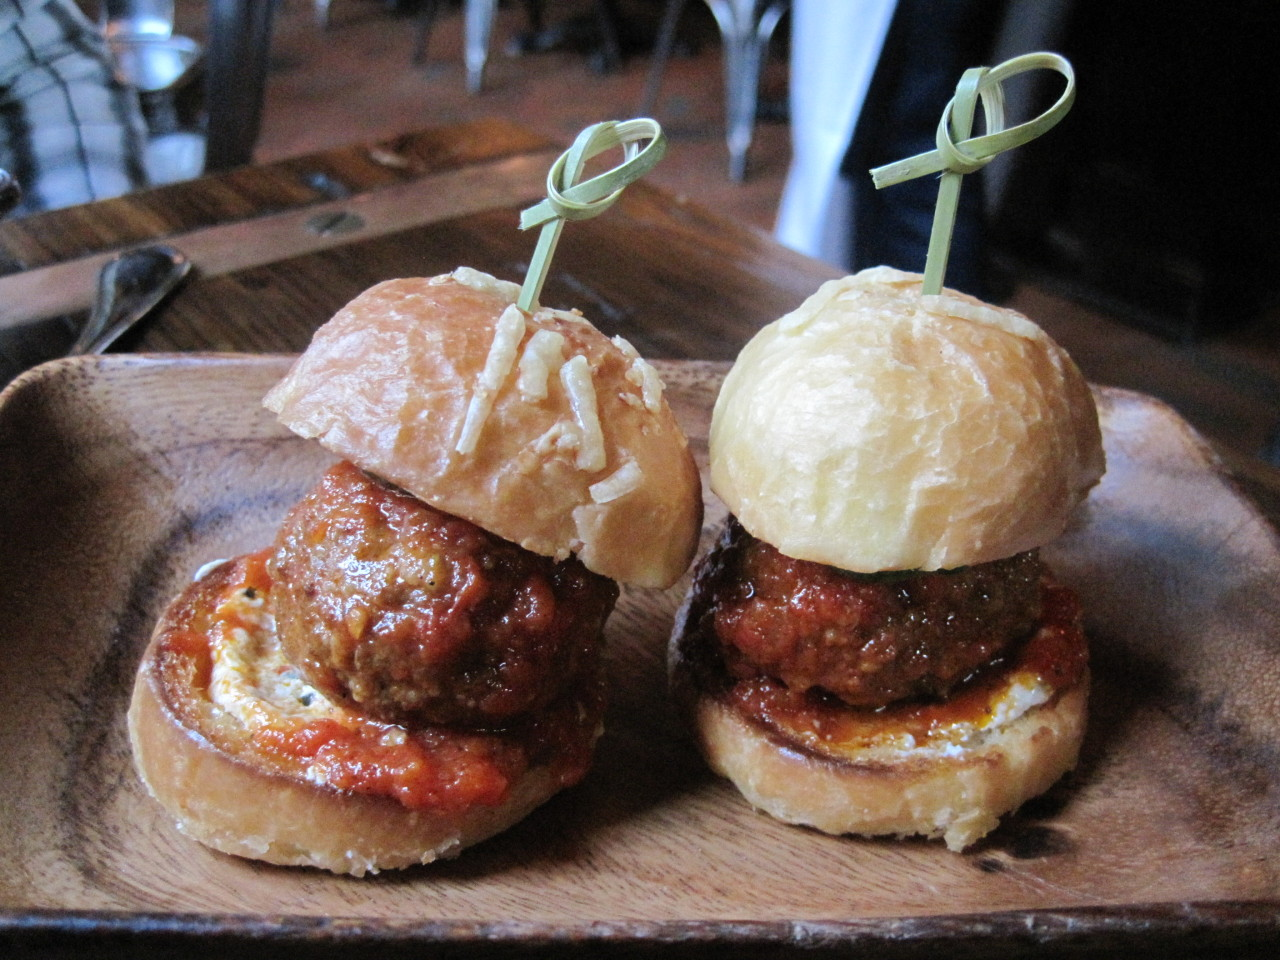 Happy Meatball Monday!  Spotted: Lamb Meatball Sliders at Locanda Verde in New York, NY by wherejessate